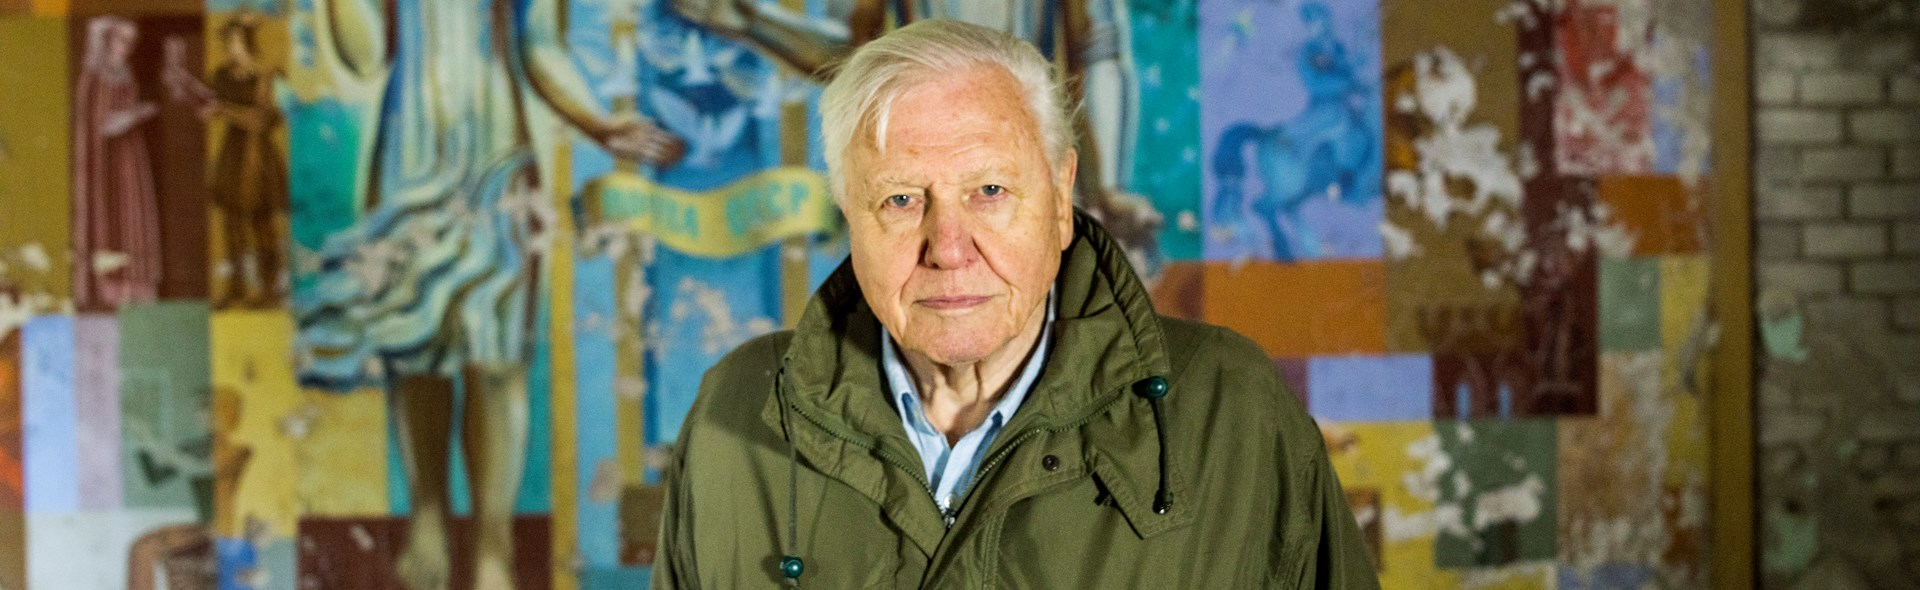 David Attenborough: A Life on Our Planet - Live From the World Premiere